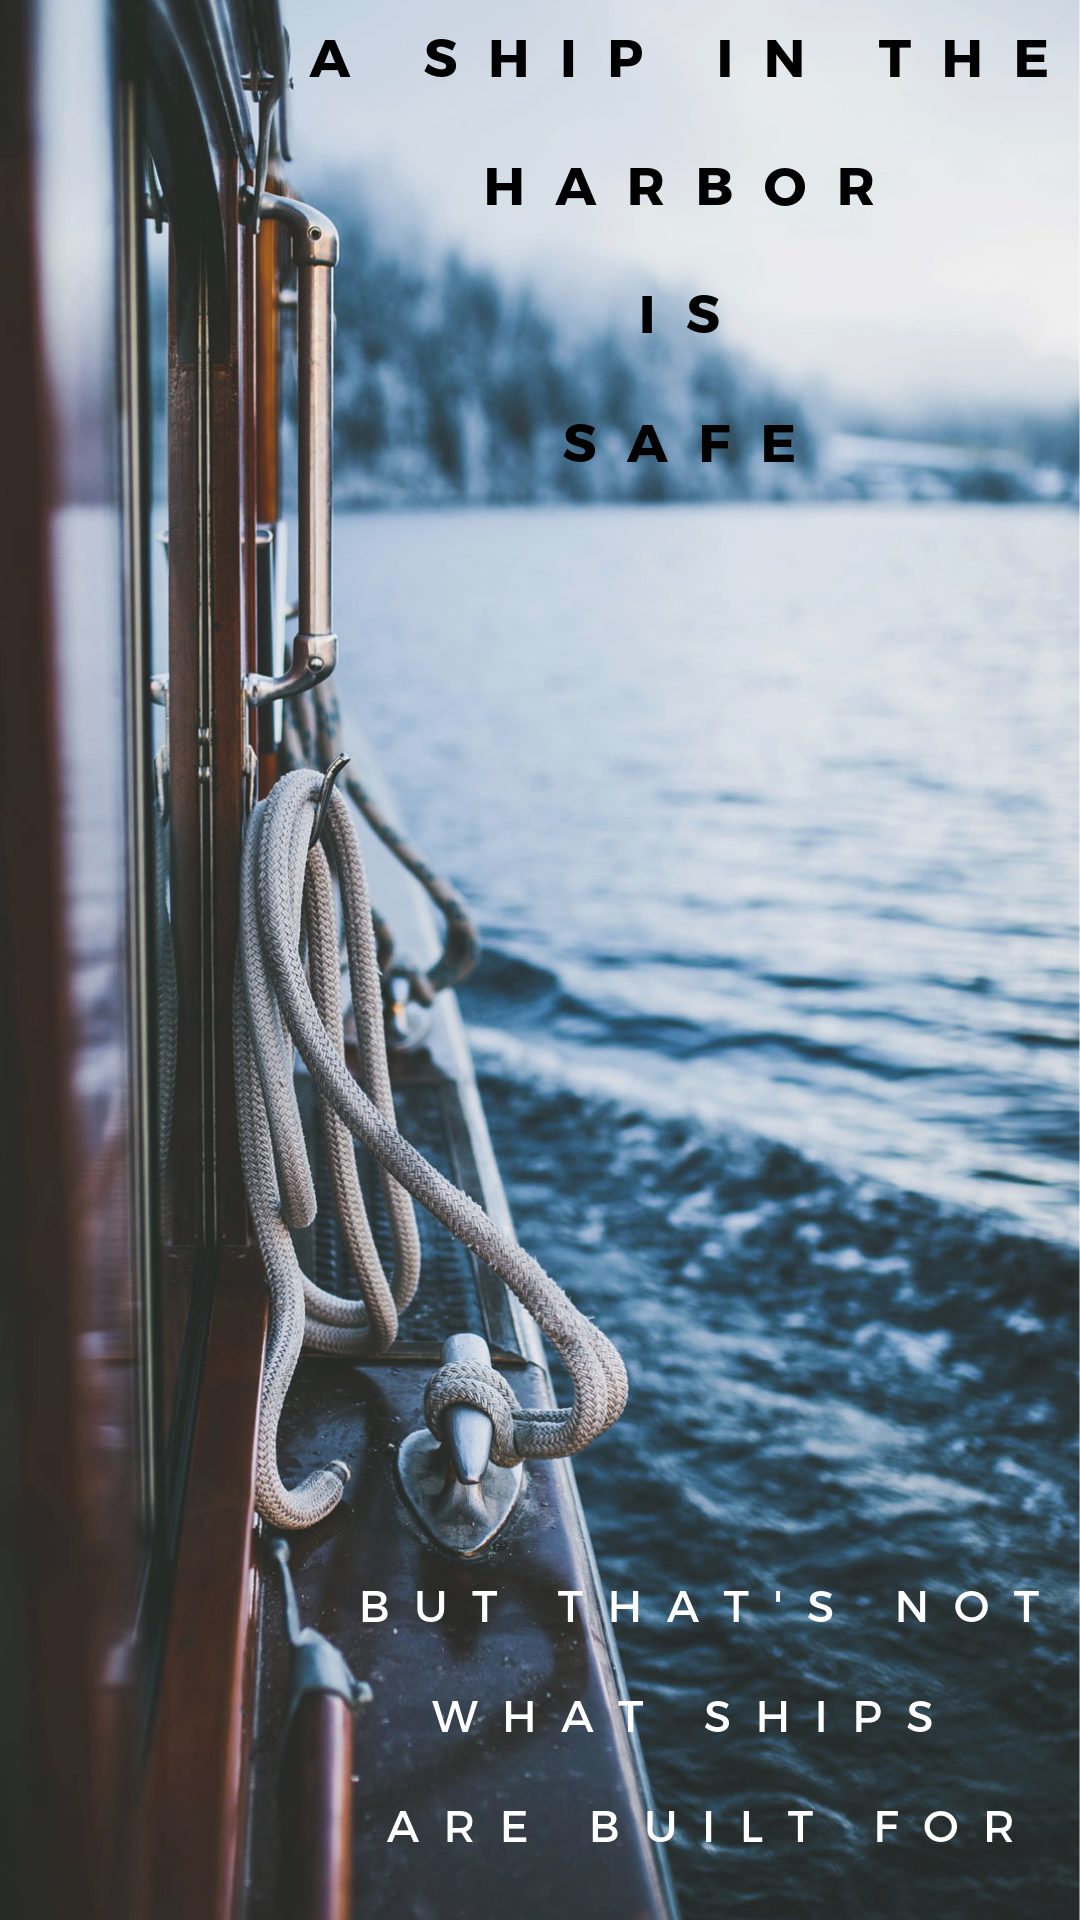 A ship in the harbor is safe, but it's not what ships are built for